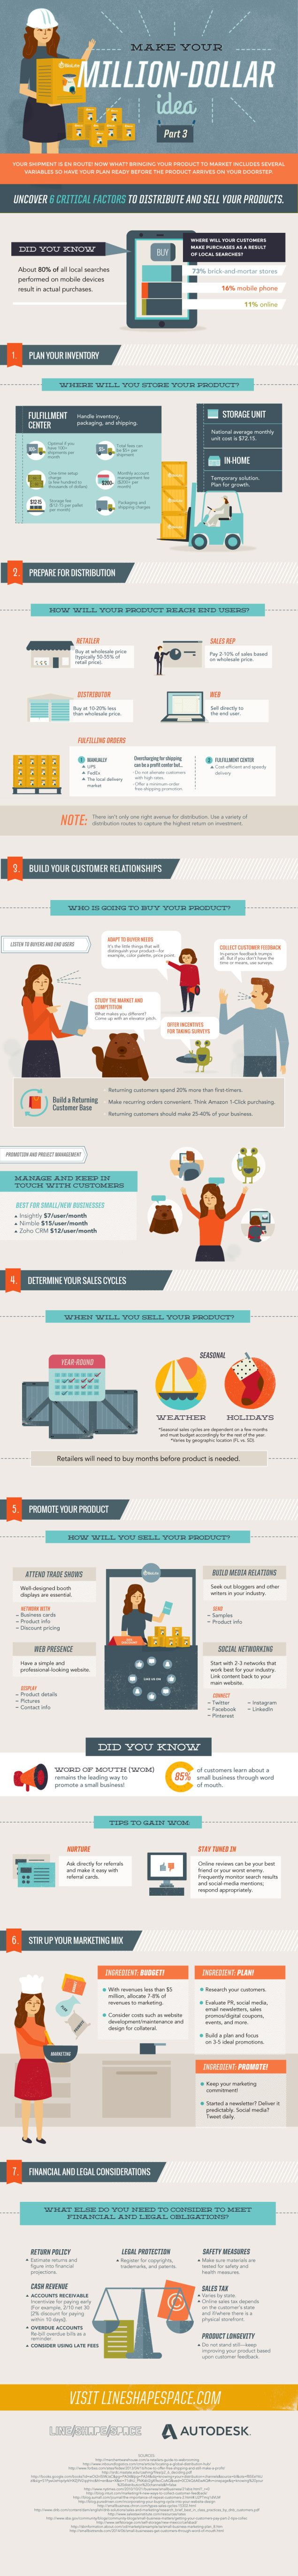 Make Your Million-Dollar Idea: A Product Distribution Strategy Infographic